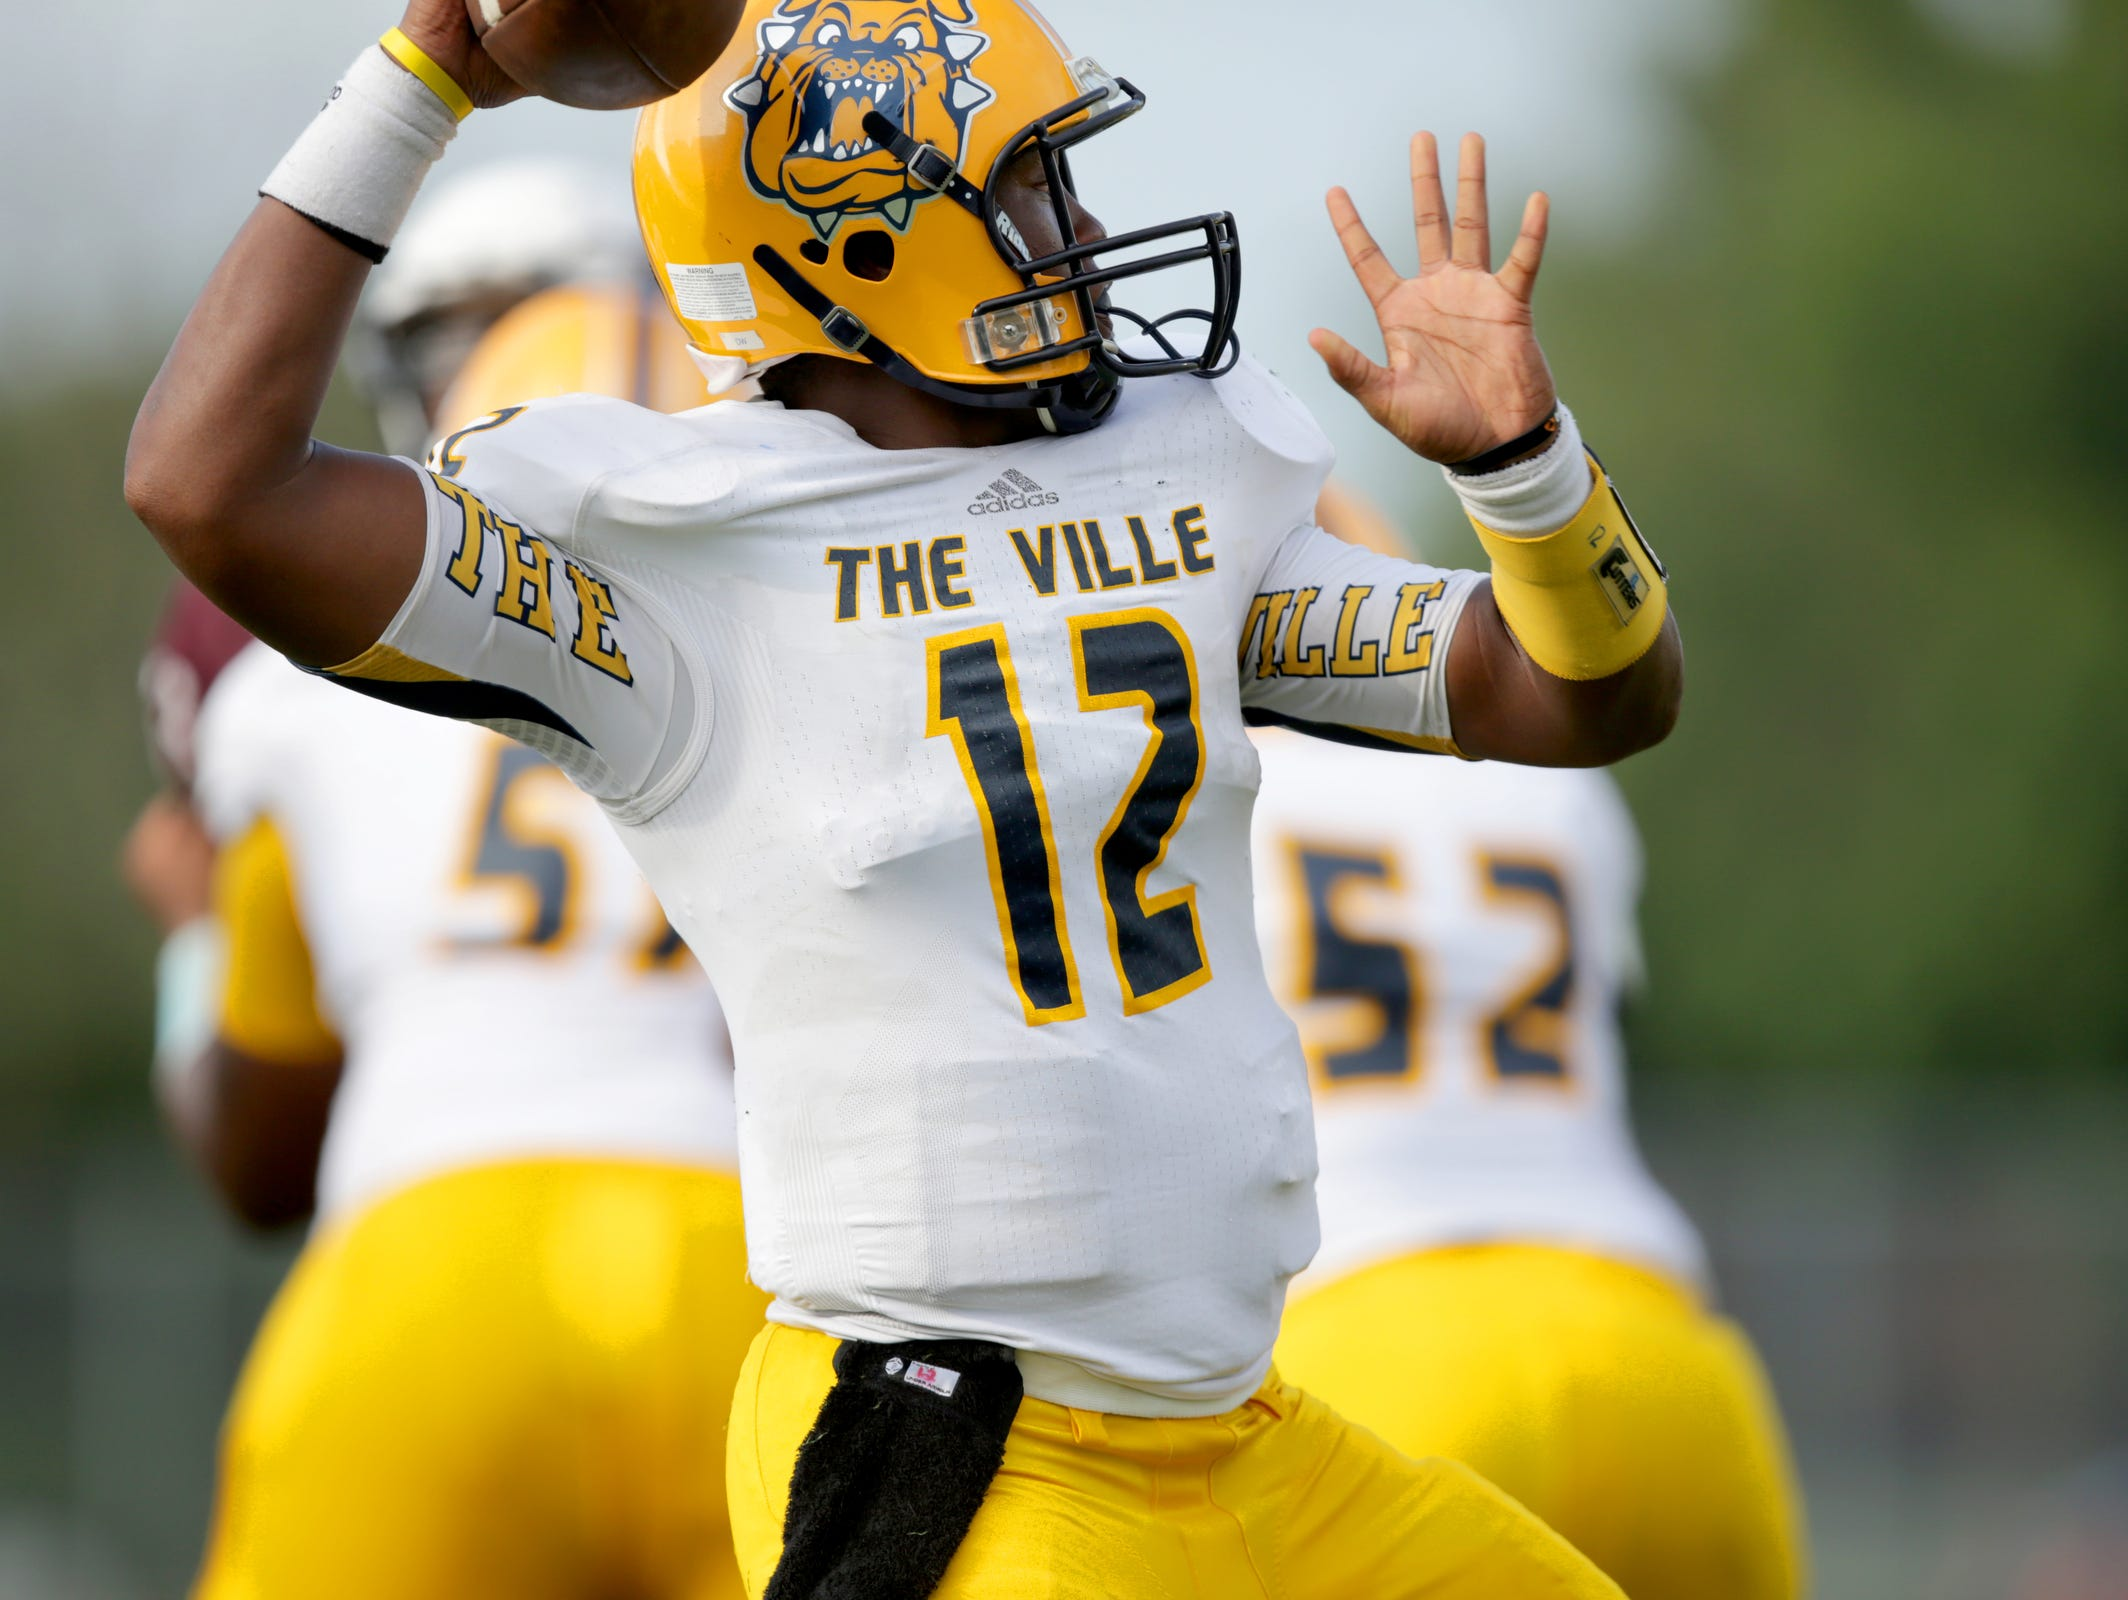 East English Village Prepatory Academy QB Delvin Washington (12) throws the ball during Detroit Public School League football game against Renaissance Varsity football team at Renaissance High School in Detroit on Friday, Sept. 4, 2015.